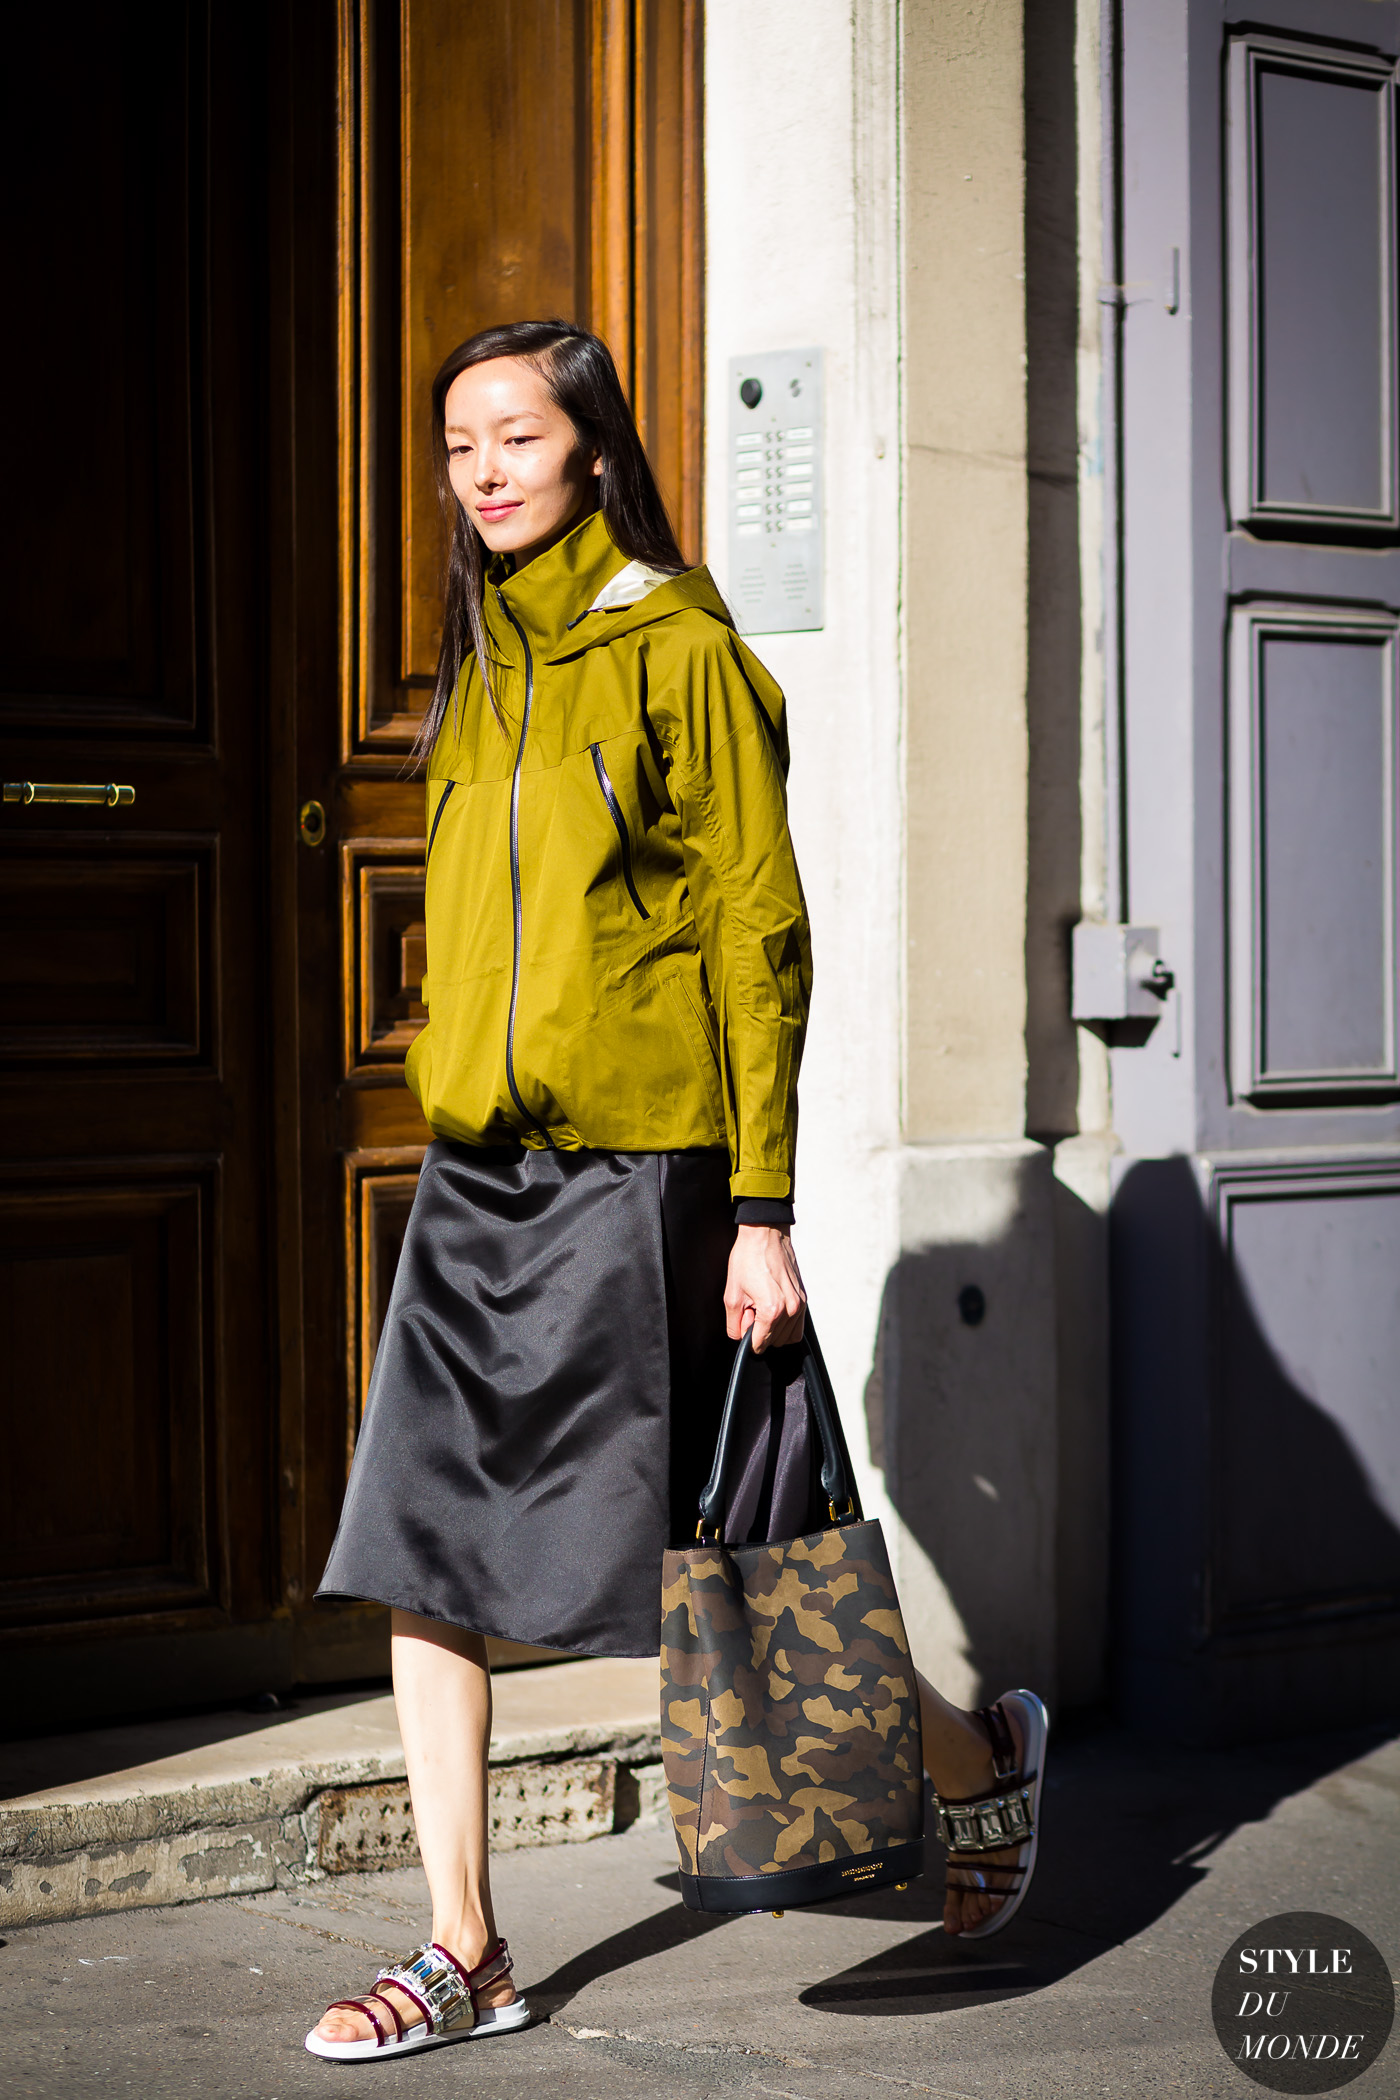 Fei Fei Sun Street Style Street Fashion Streetsnaps by STYLEDUMONDE Street Style Fashion Photography